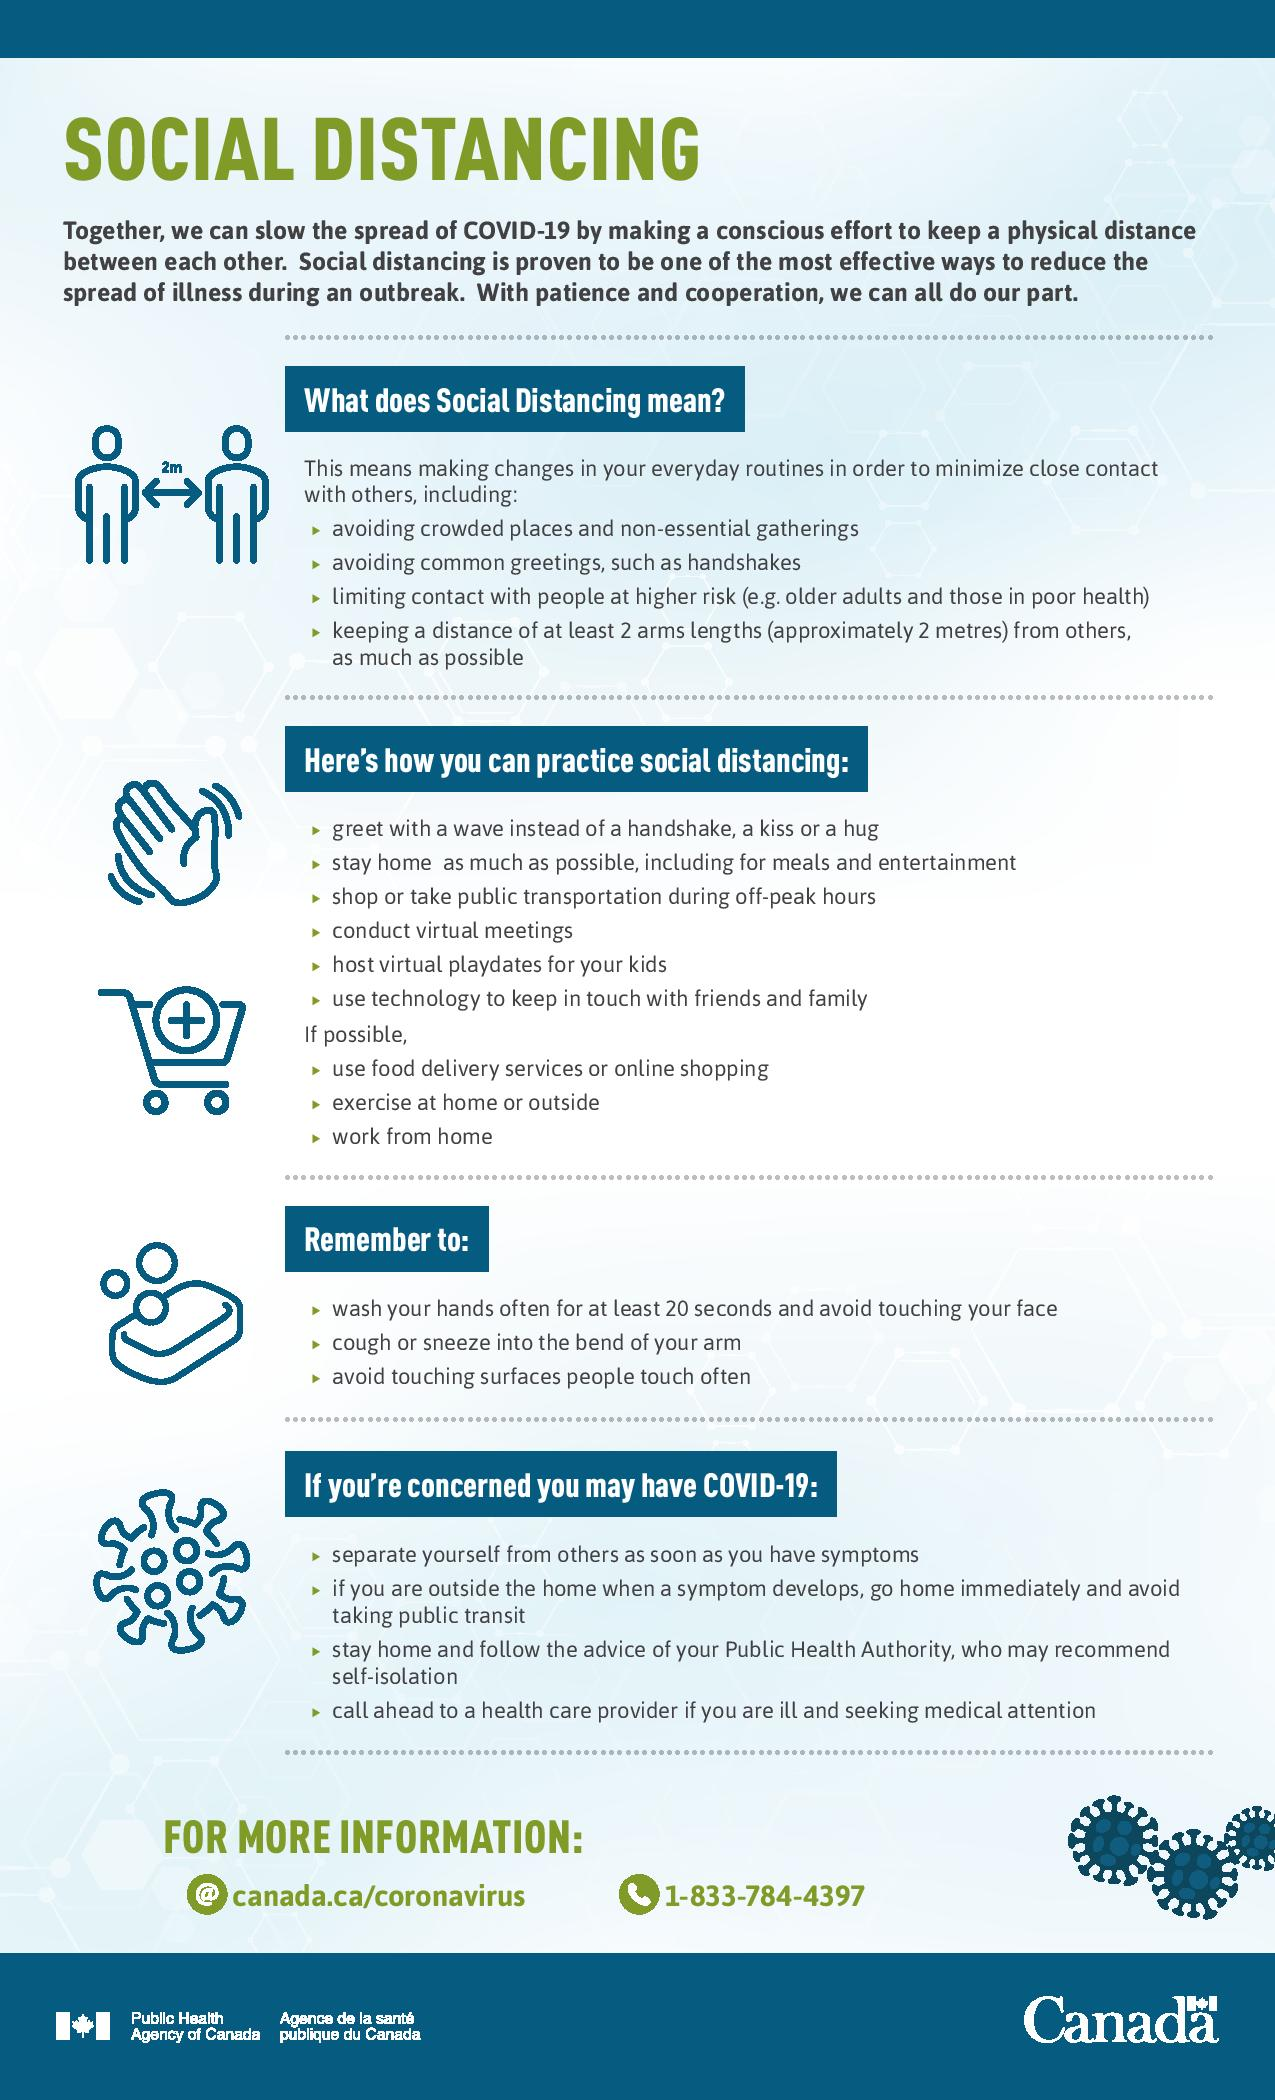 1587047329_social-distancing-infograph-eng_1-page-001